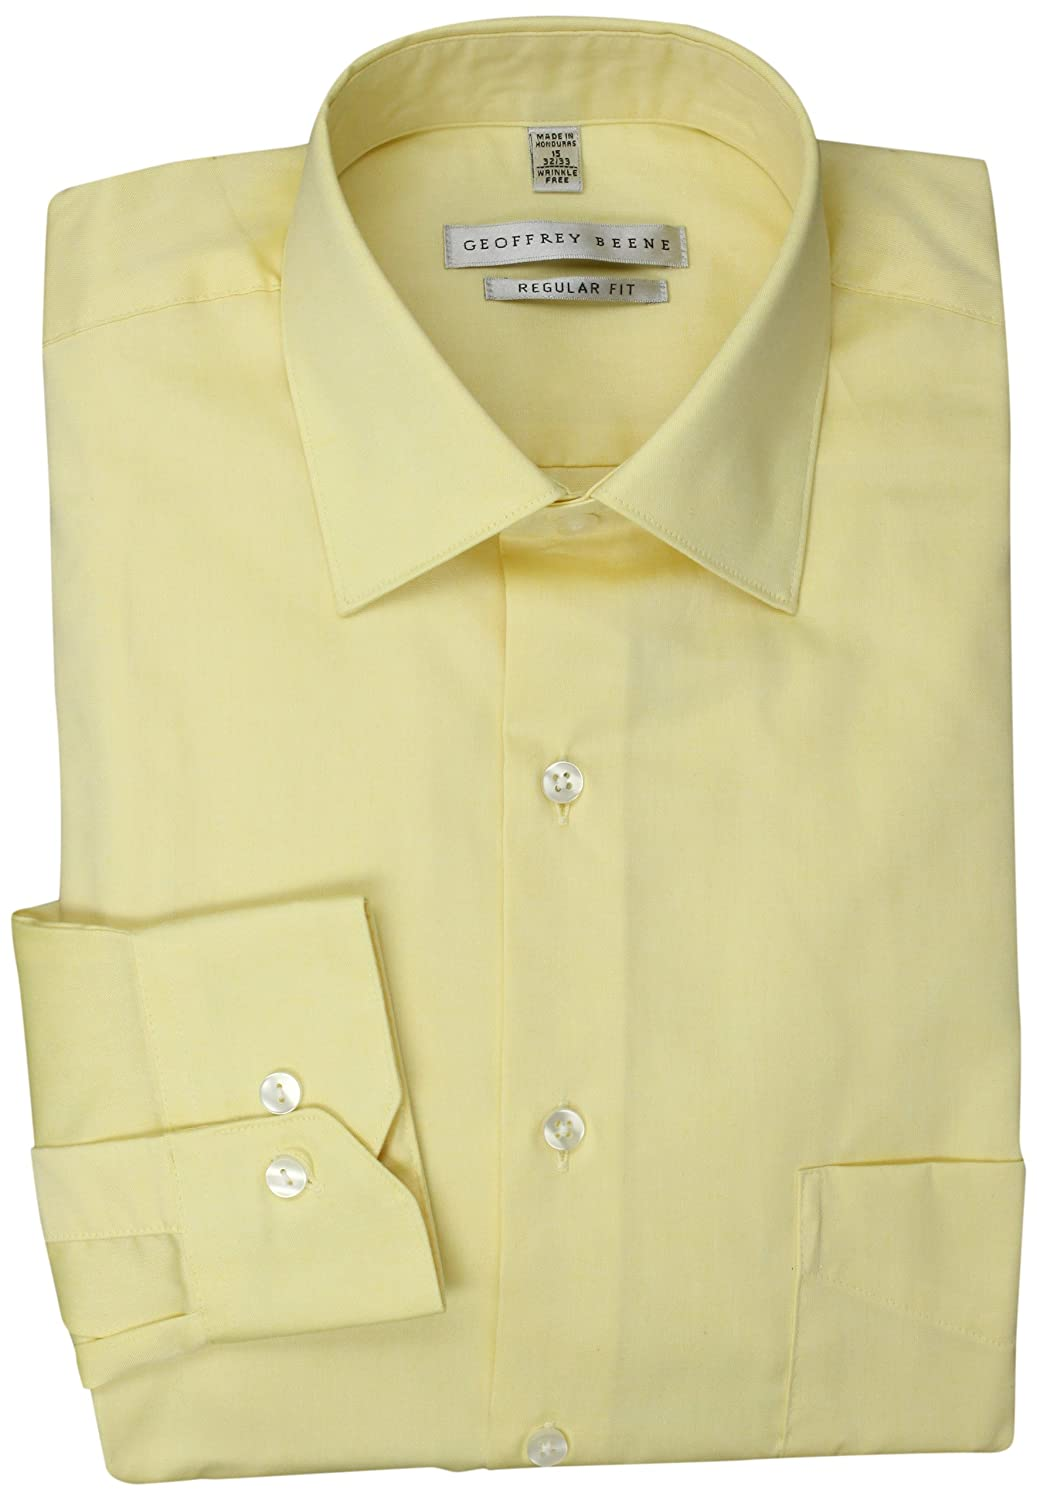 Geoffrey beene dress shirt colors